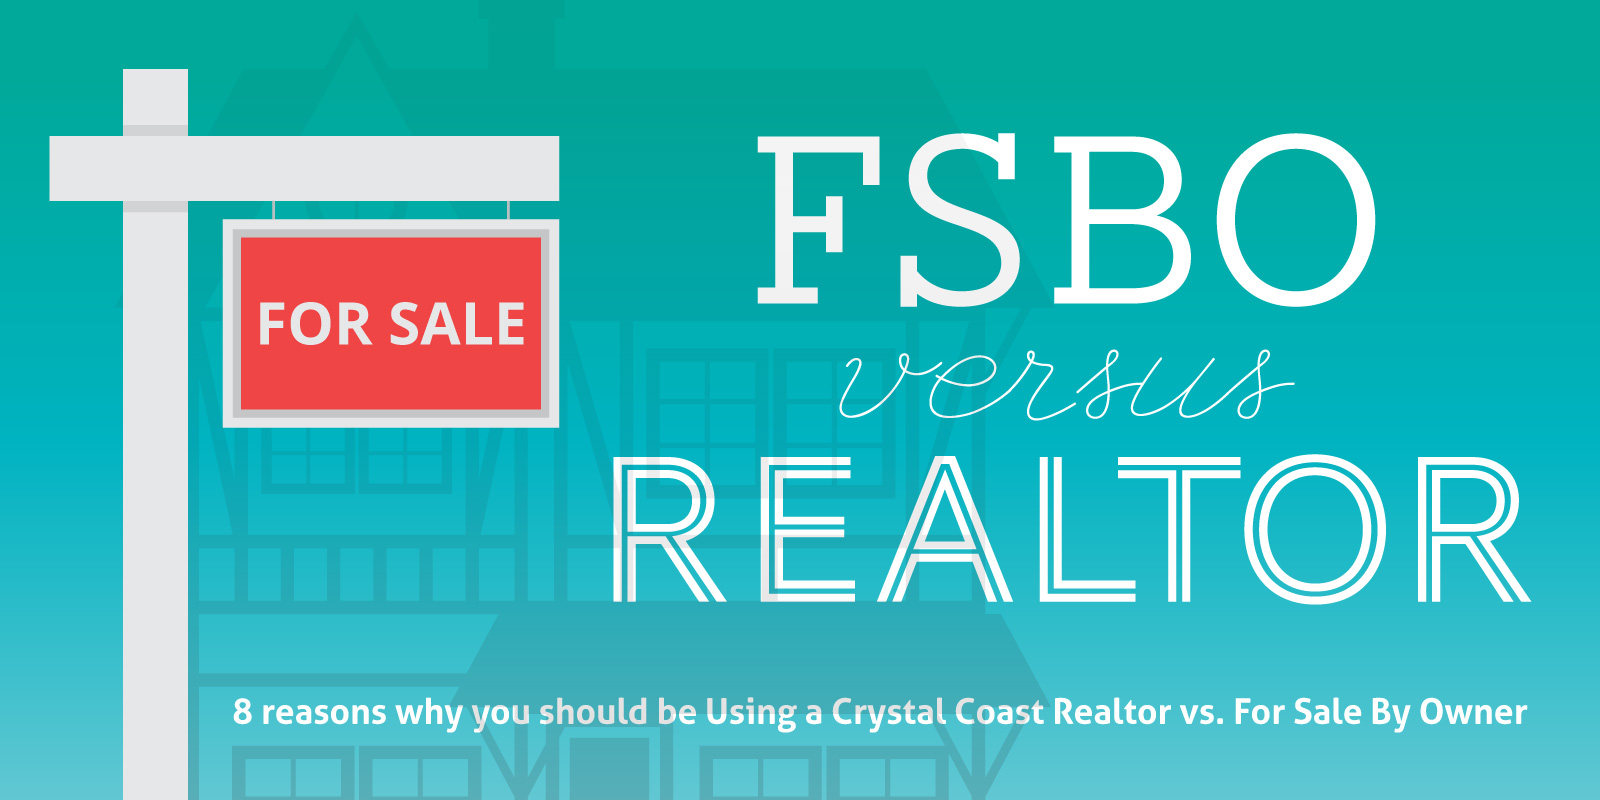 8 reasons why you should be Using a Crystal Coast Realtor vs. For Sale By Owner